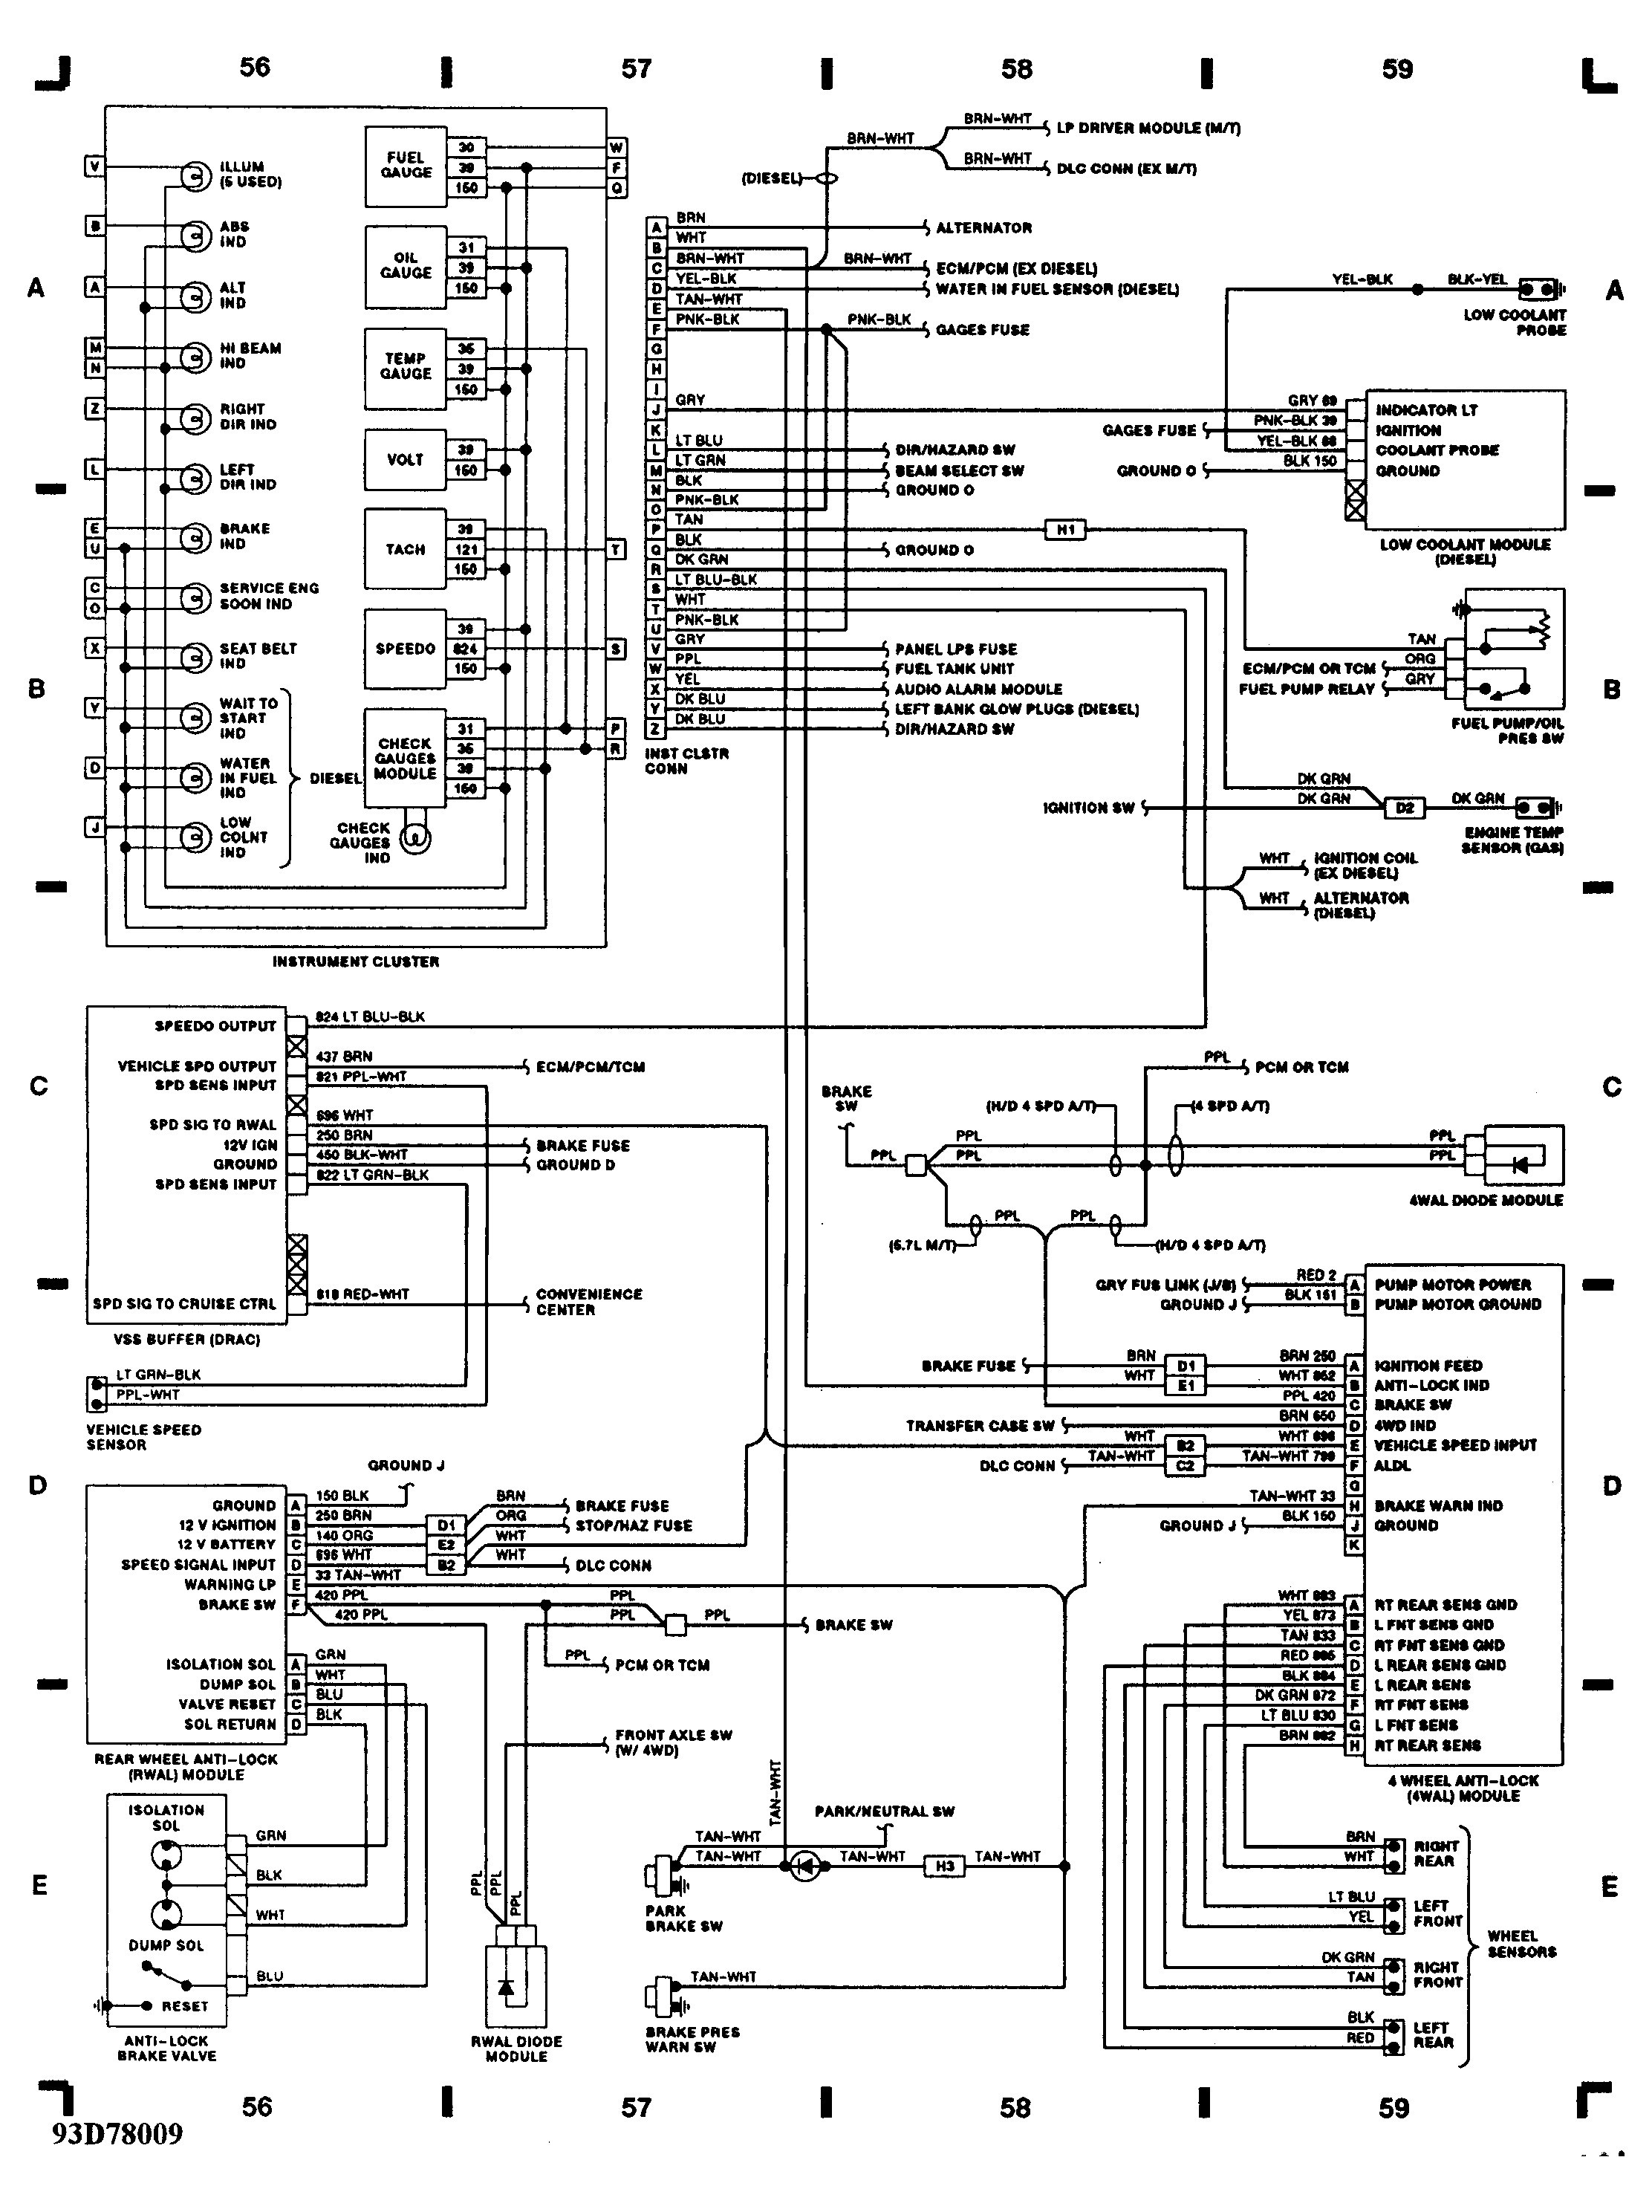 Chevy Silverado Wiring Diagram 1993 Chevy Silverado Wiring Diagram Beautiful I Have A 93 Silverado Of Chevy Silverado Wiring Diagram